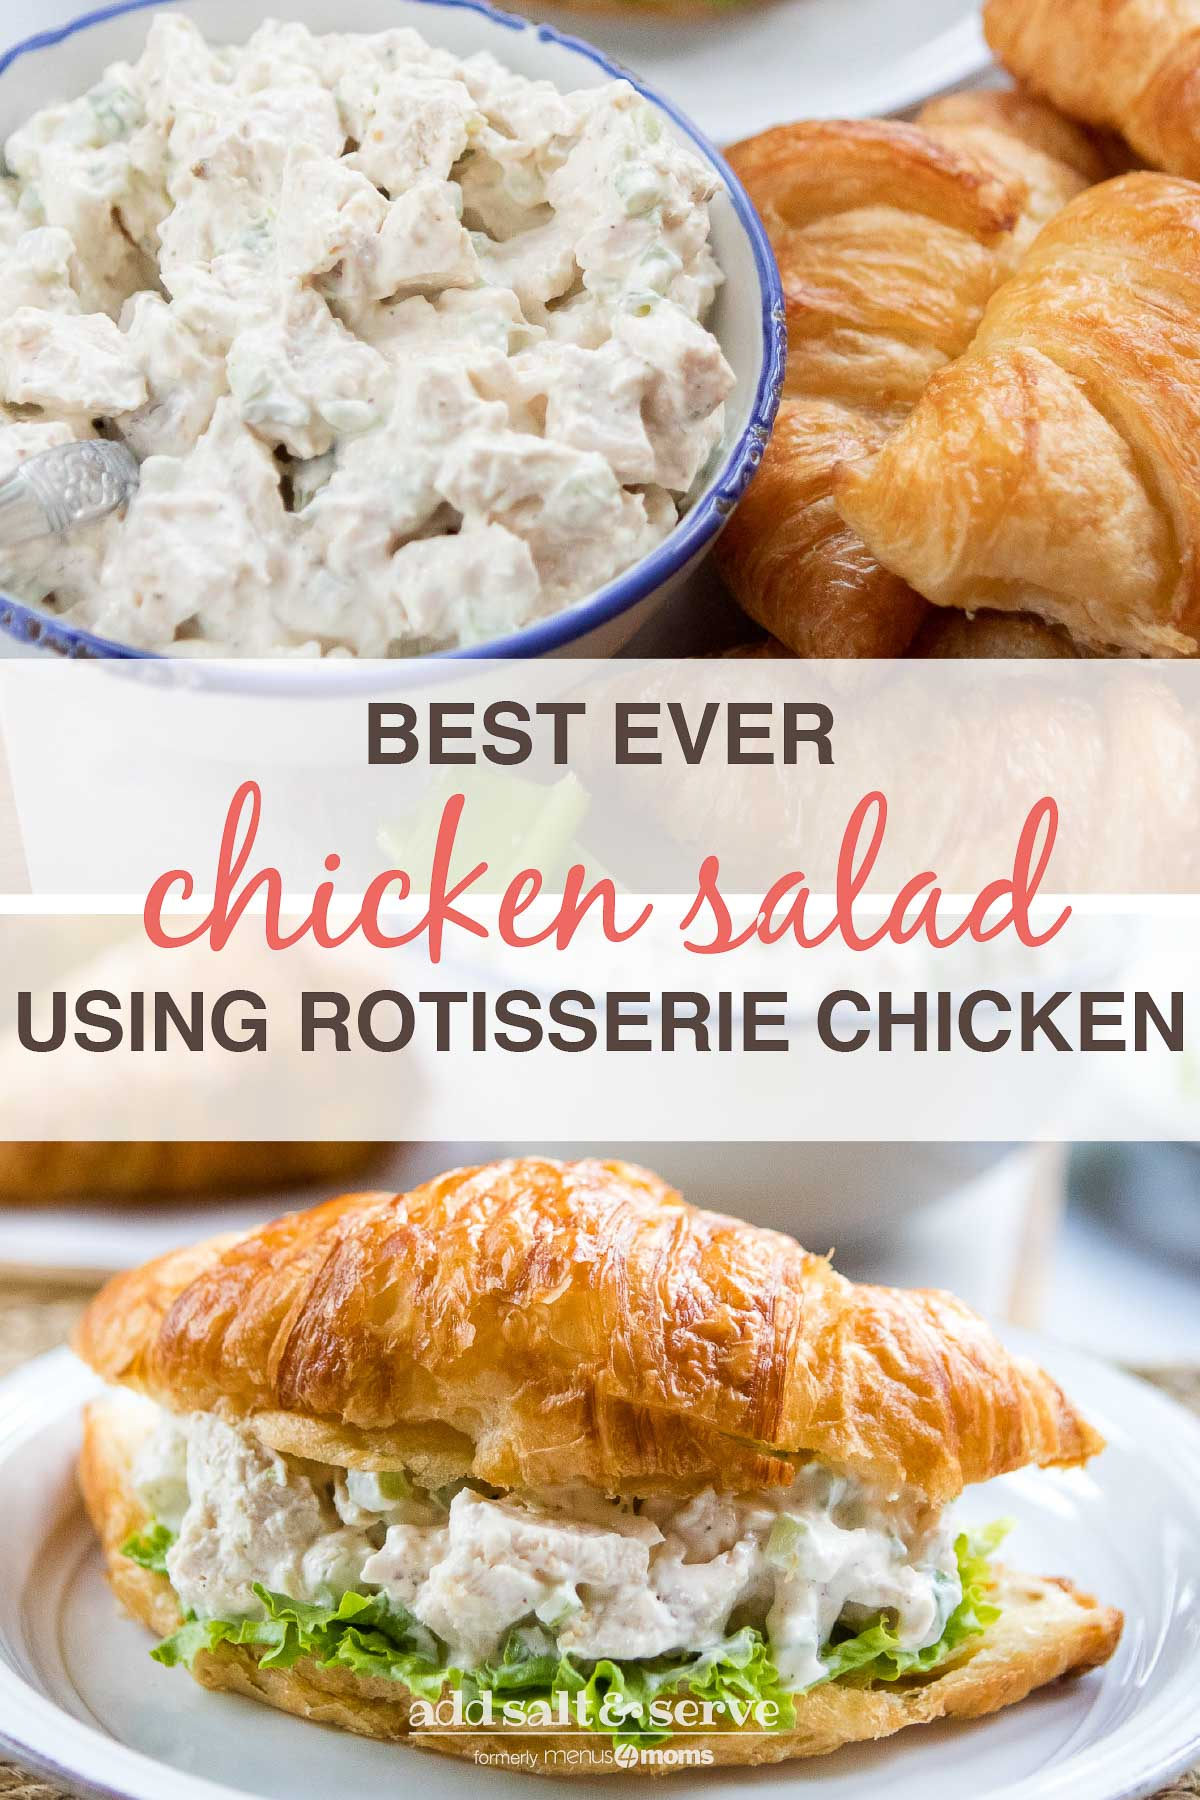 Composite image: top photo is a bowl of chicken salad next to croissants and celery. Bottom photo is chicken salad and lettuce on a croissant, all on a white plate. Text is Best Ever Chicken Salad Using Rotisserie Chicken - Add Salt & Serve logo